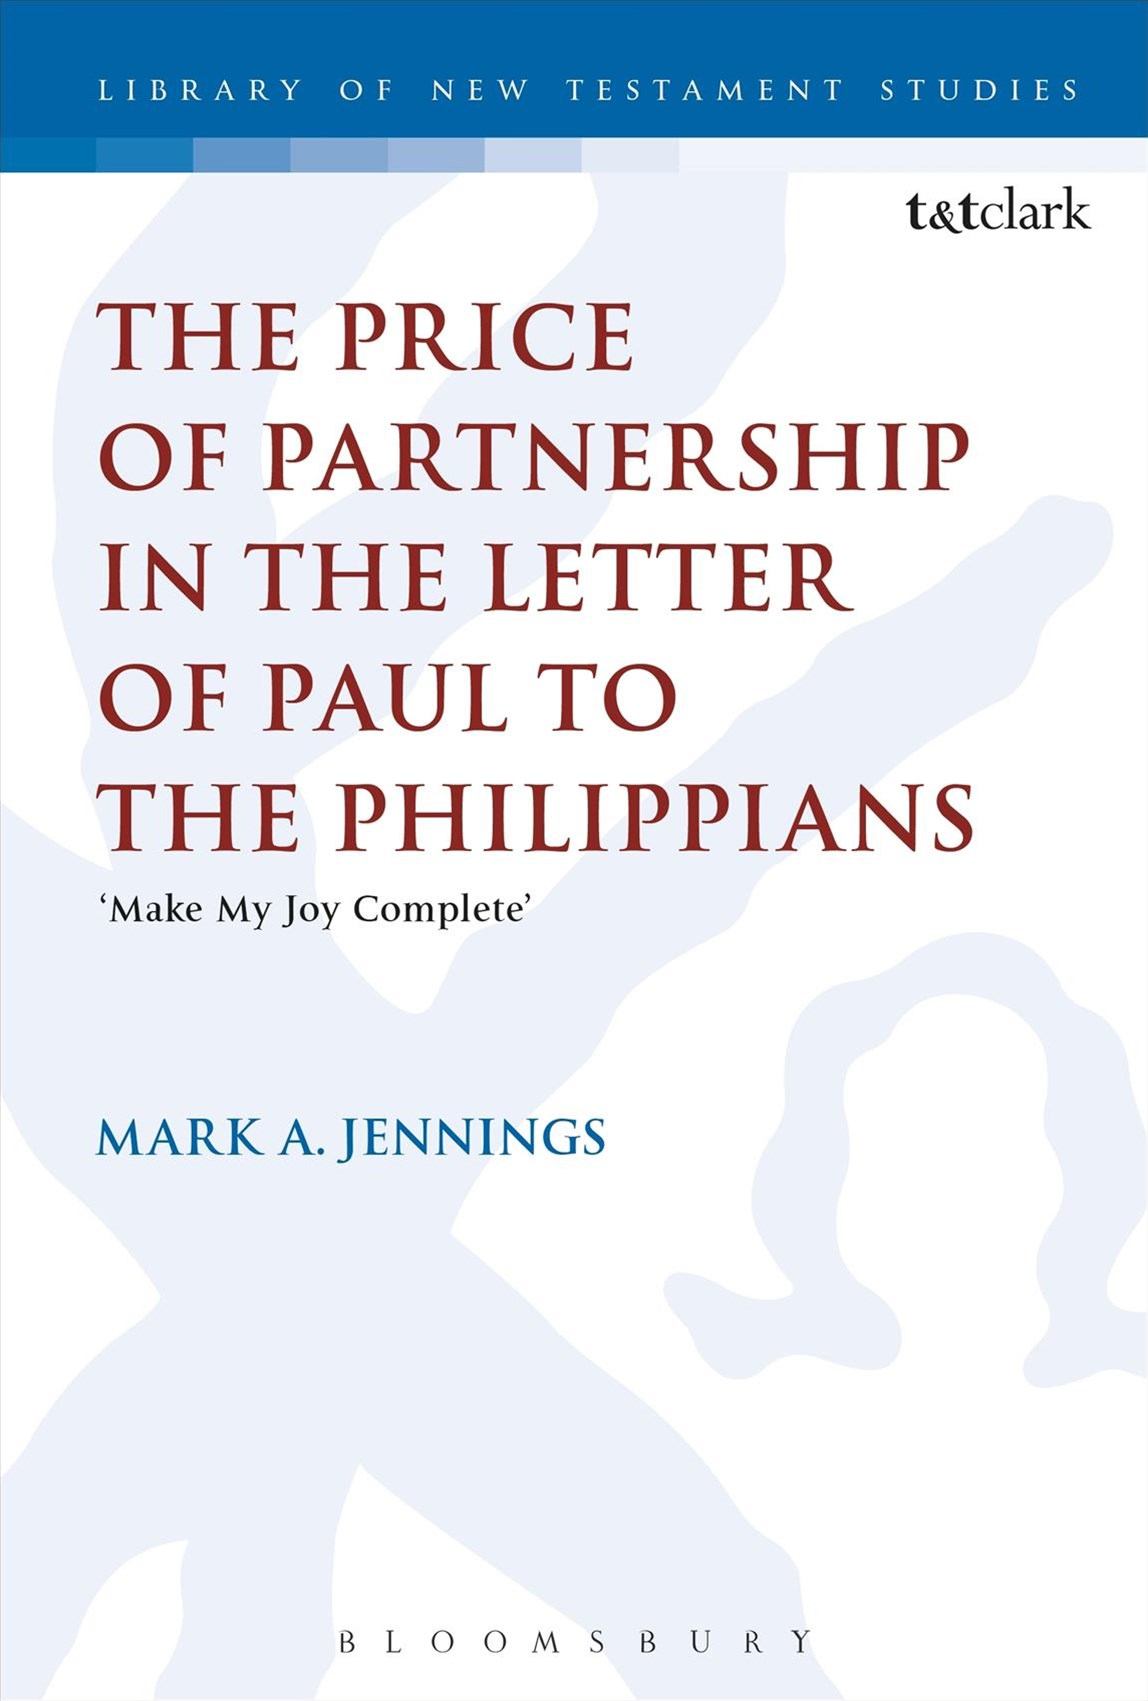 Price of Partnership in the Letter of Paul to the Philippians